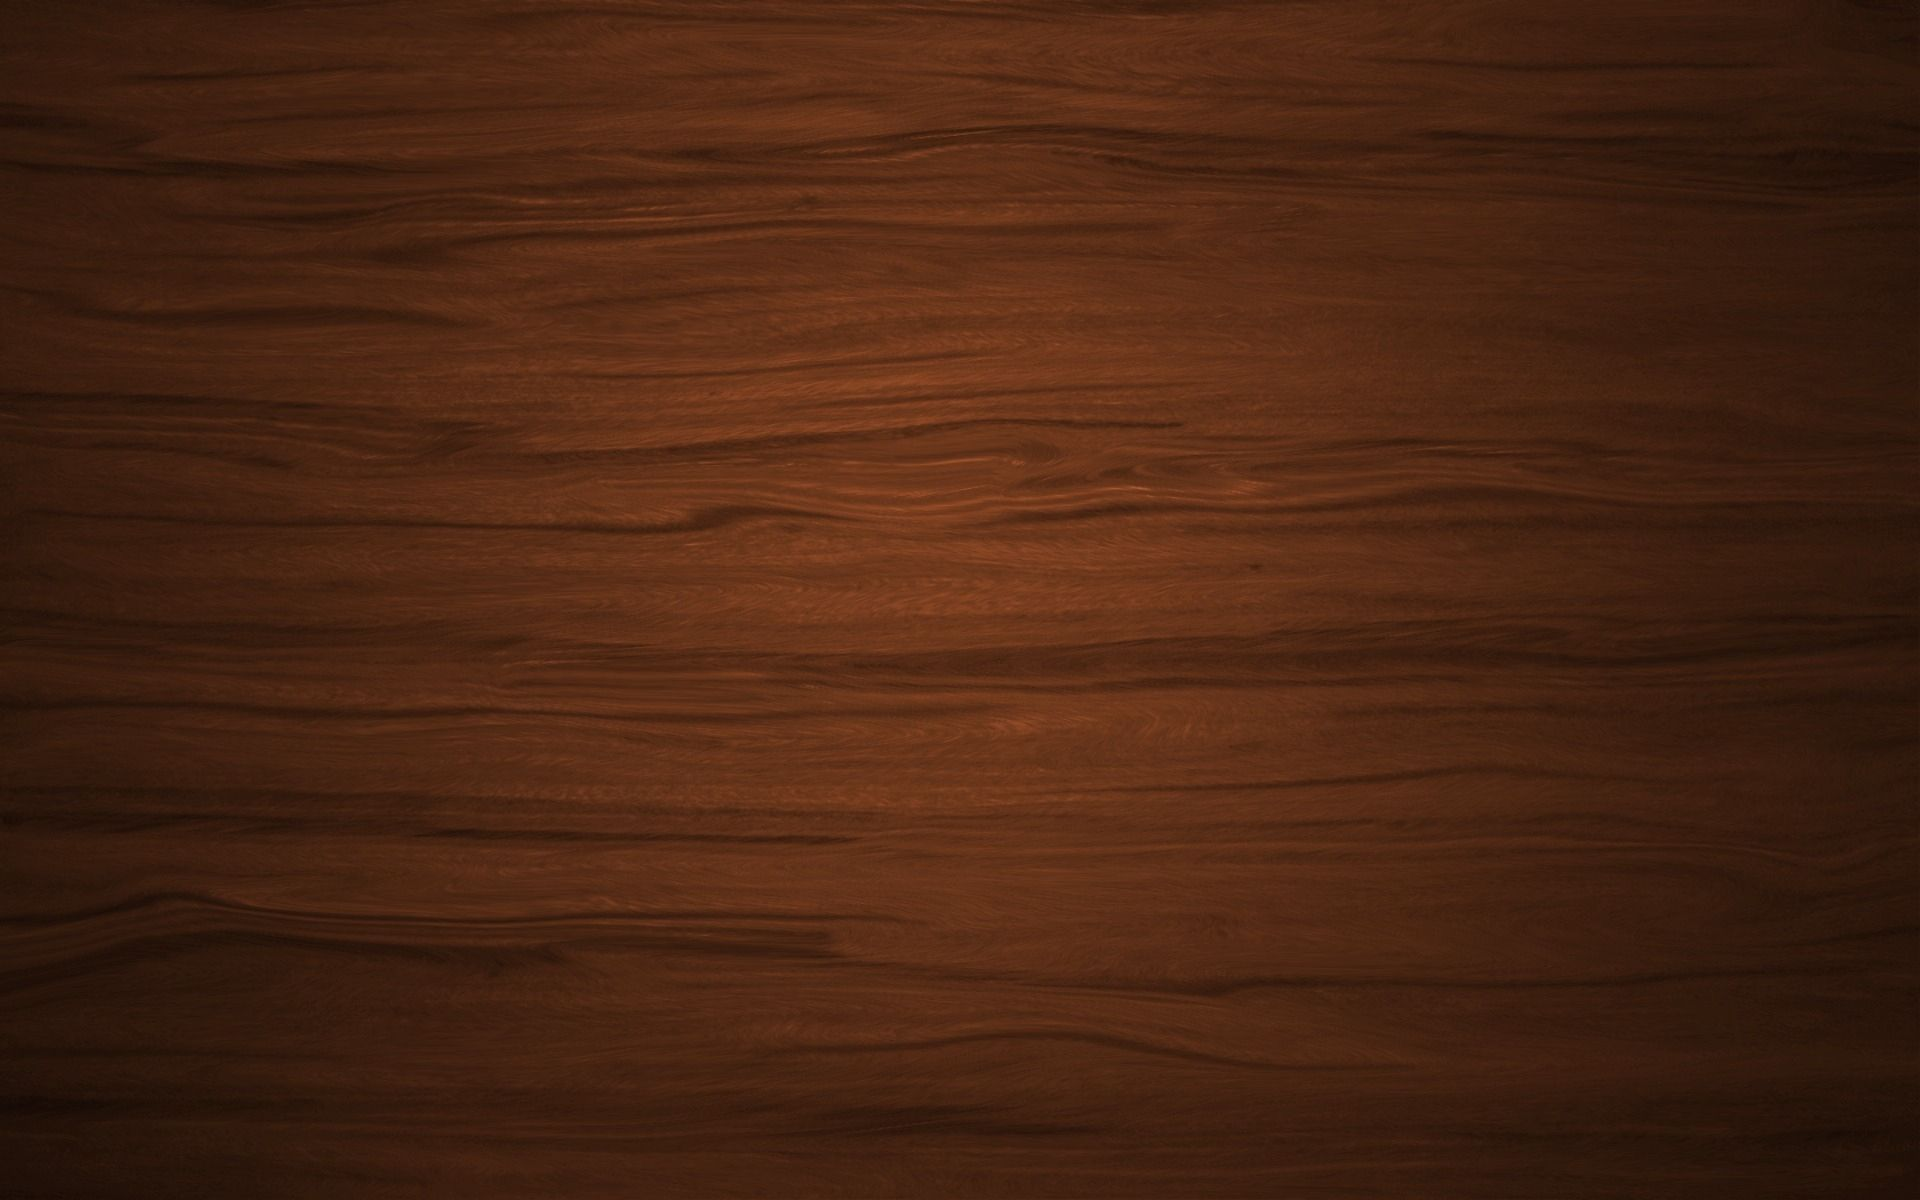 Wood Textures Texture Wallpaper